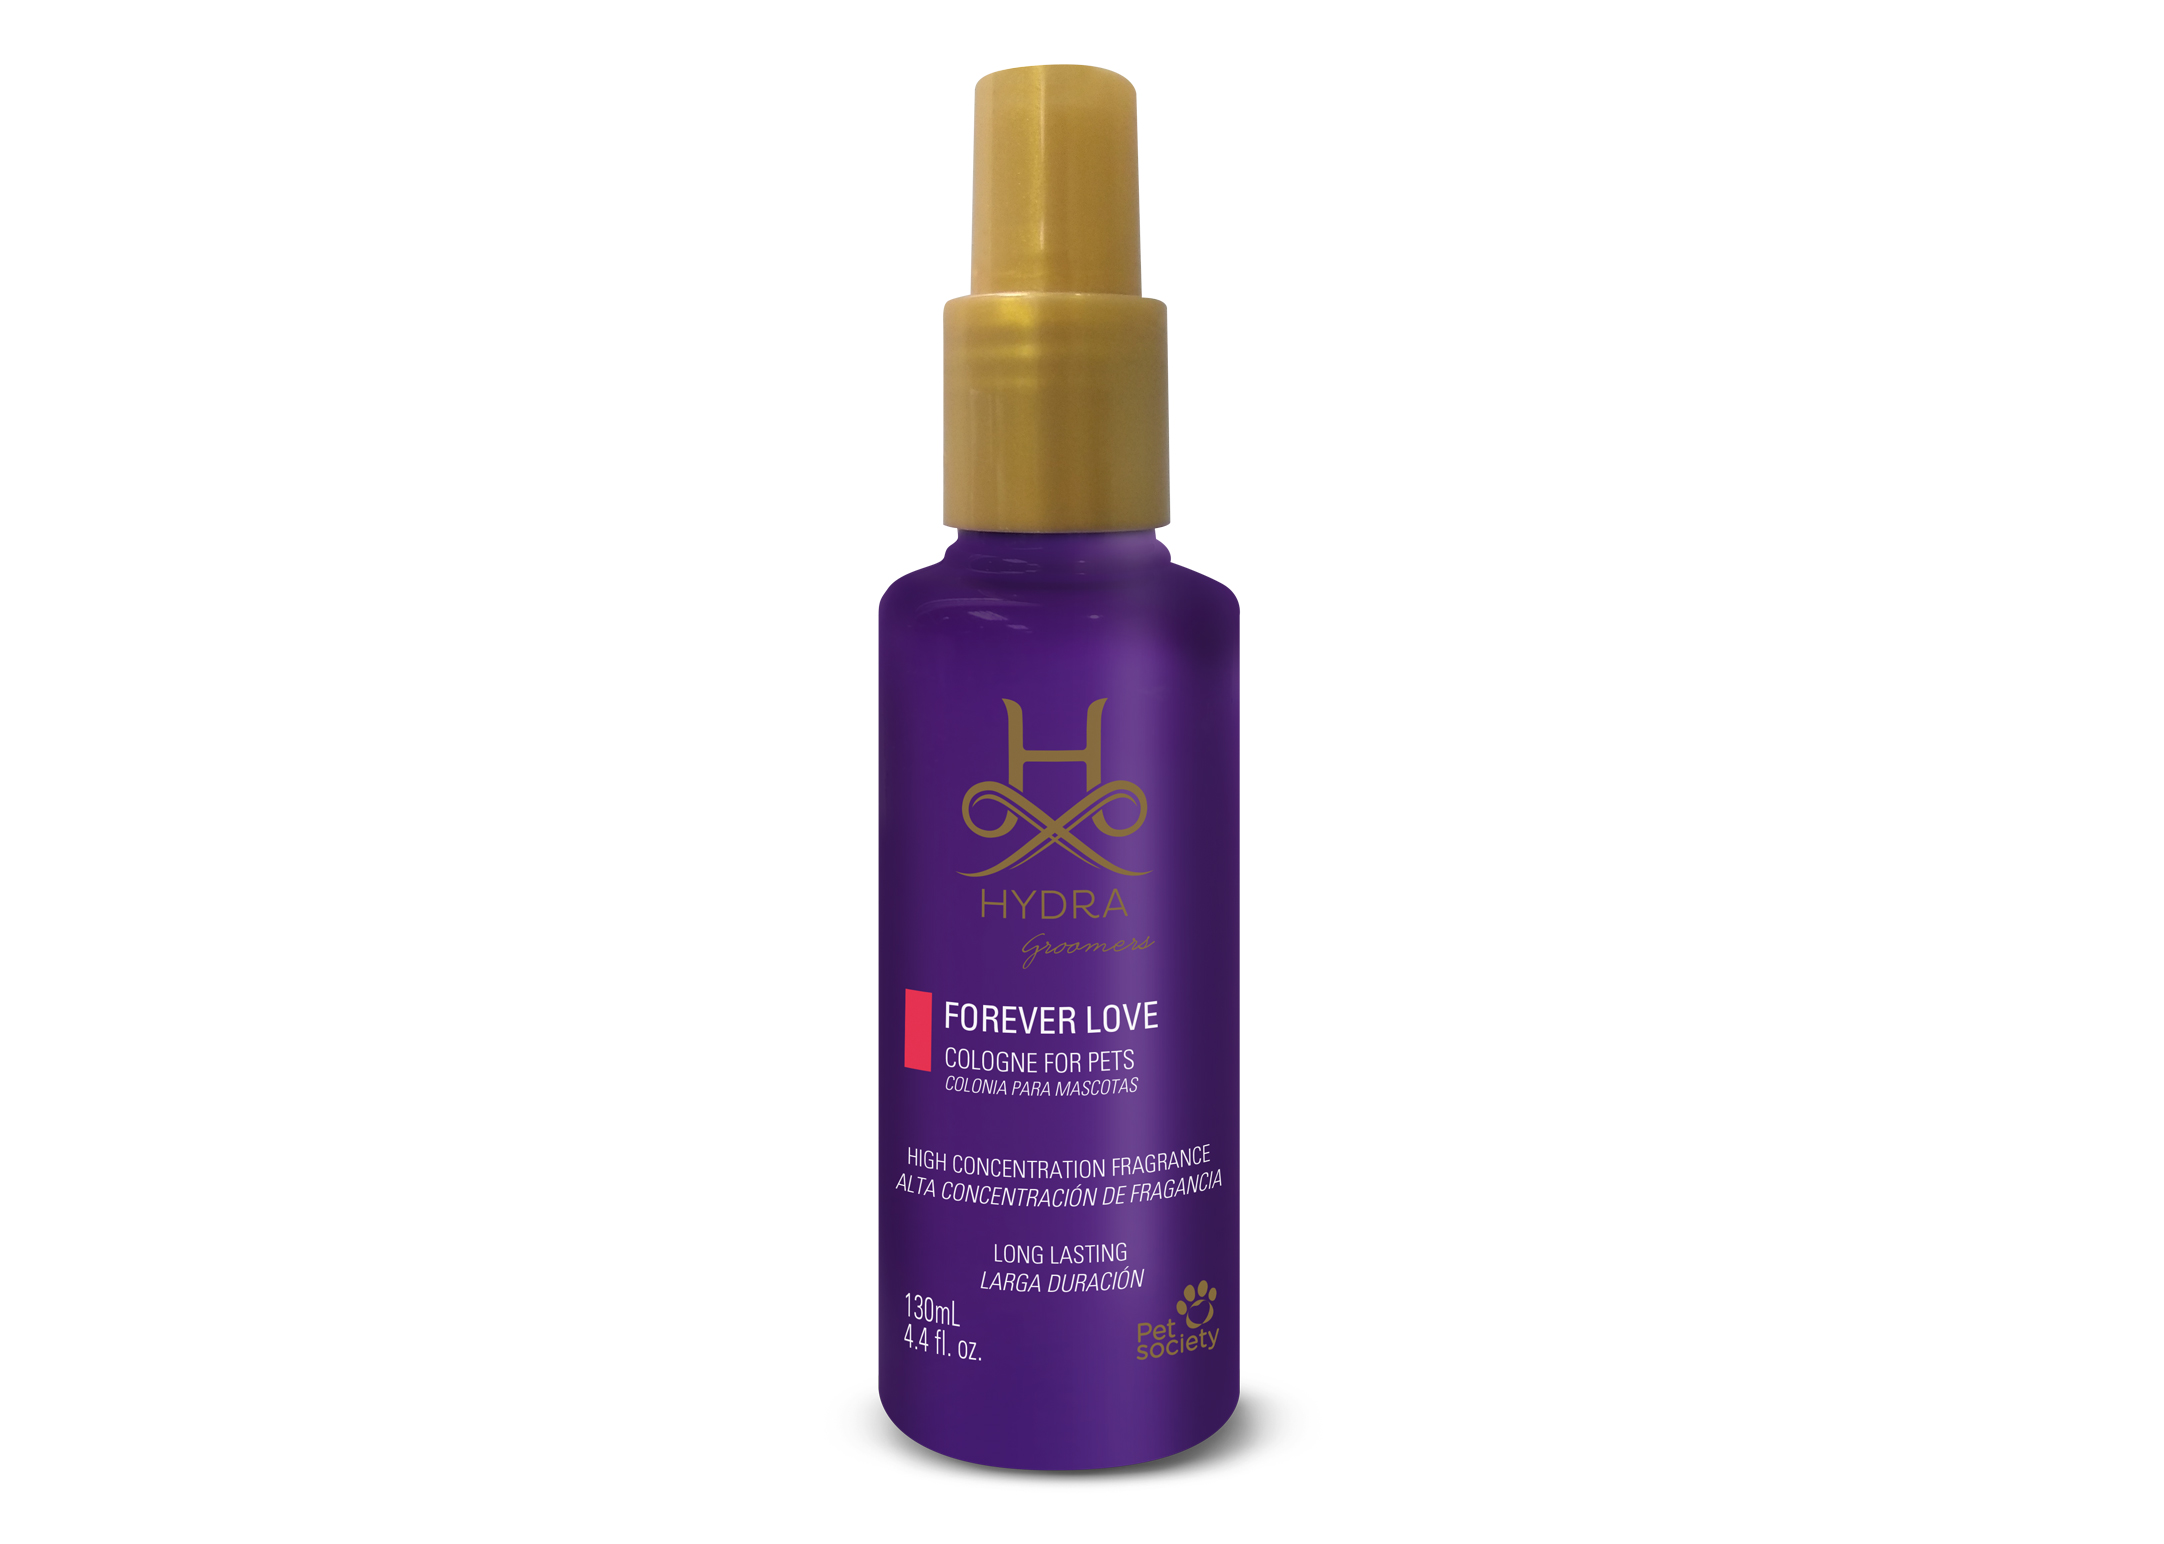 Hydra Groomers Cologne Forever LOVE 130ml